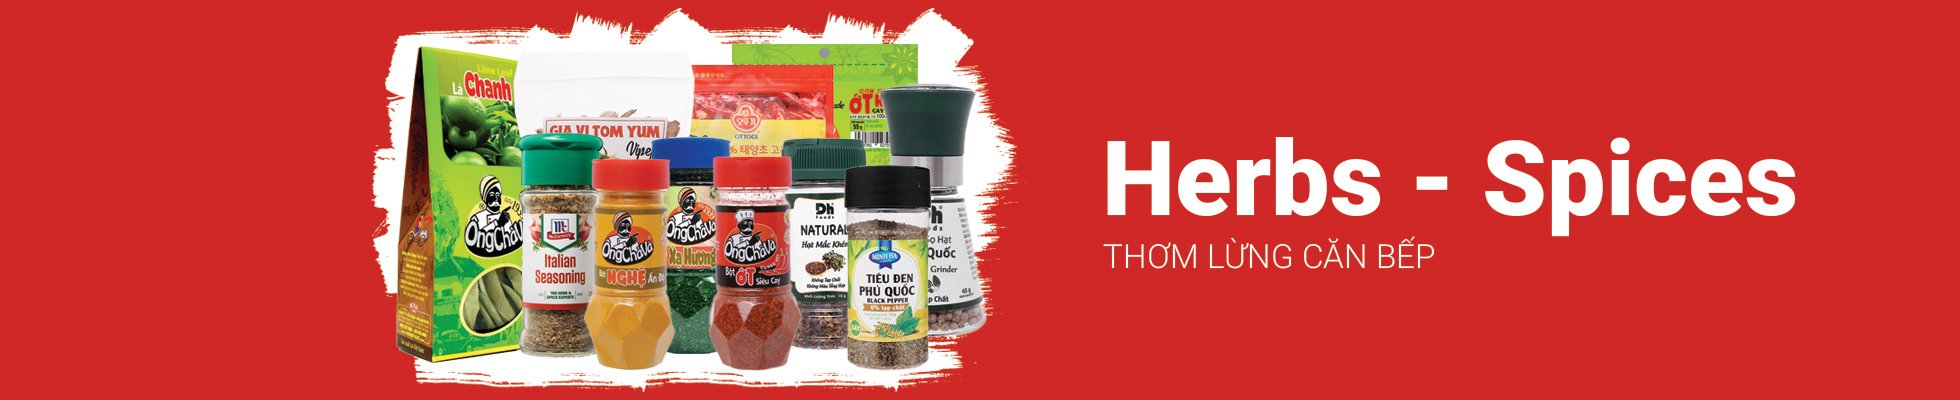 Herbs, Spices